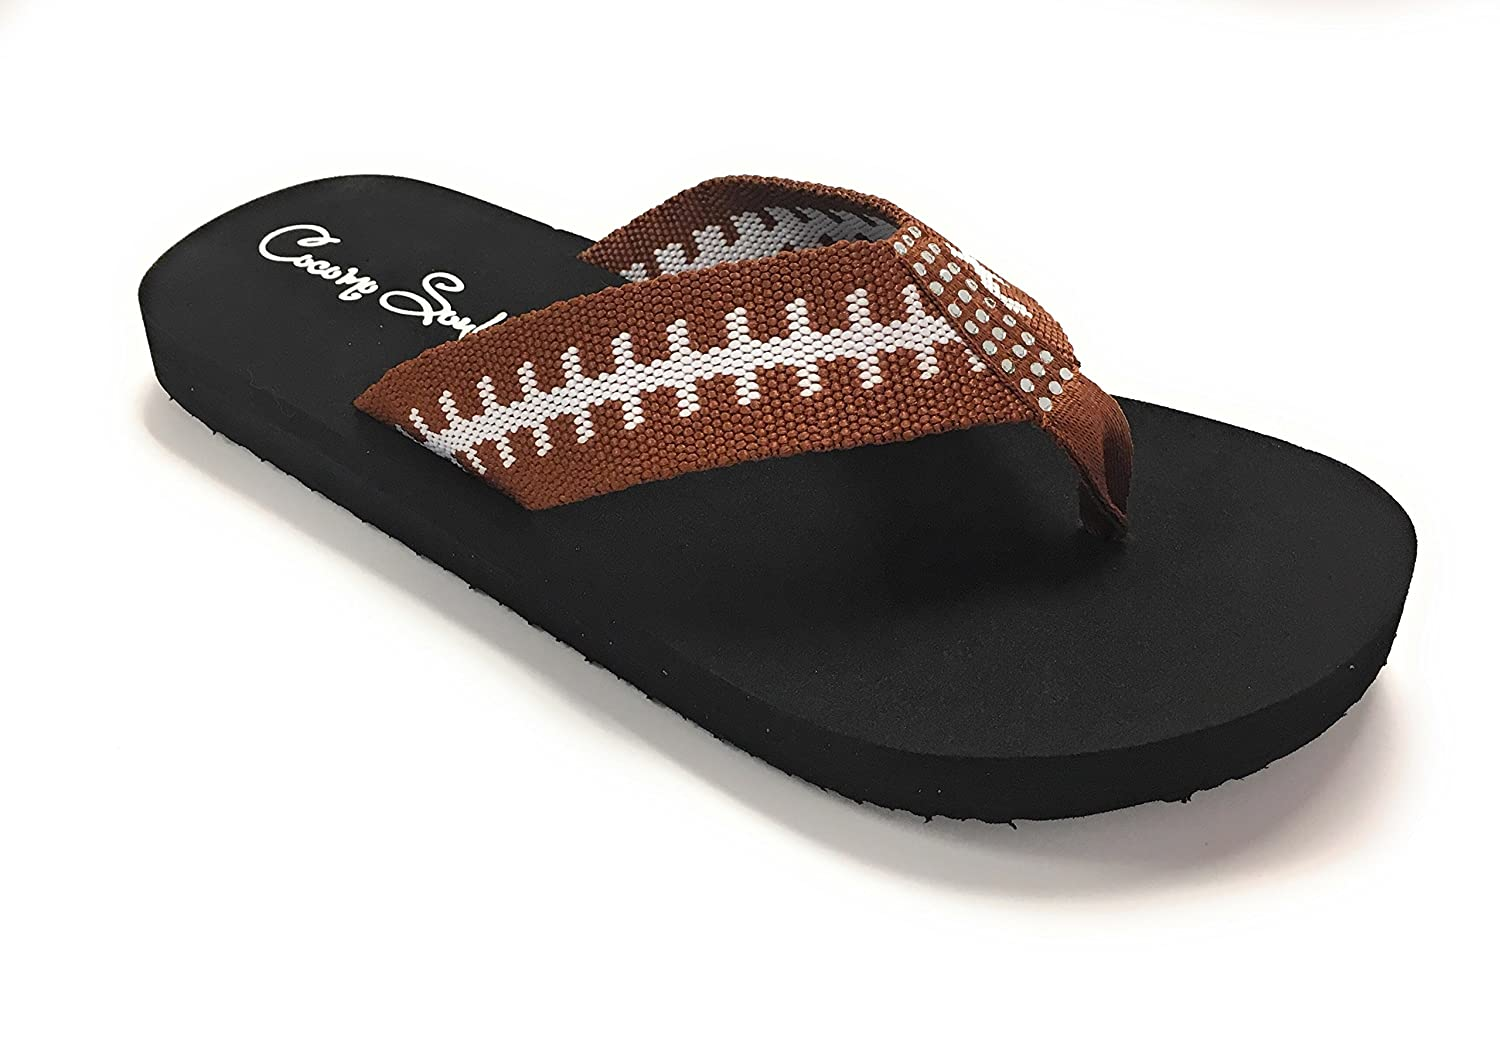 3c099d0732a2 First choice For Cocomo Soul Flat Fabric Football Flip Flop Sandals ...